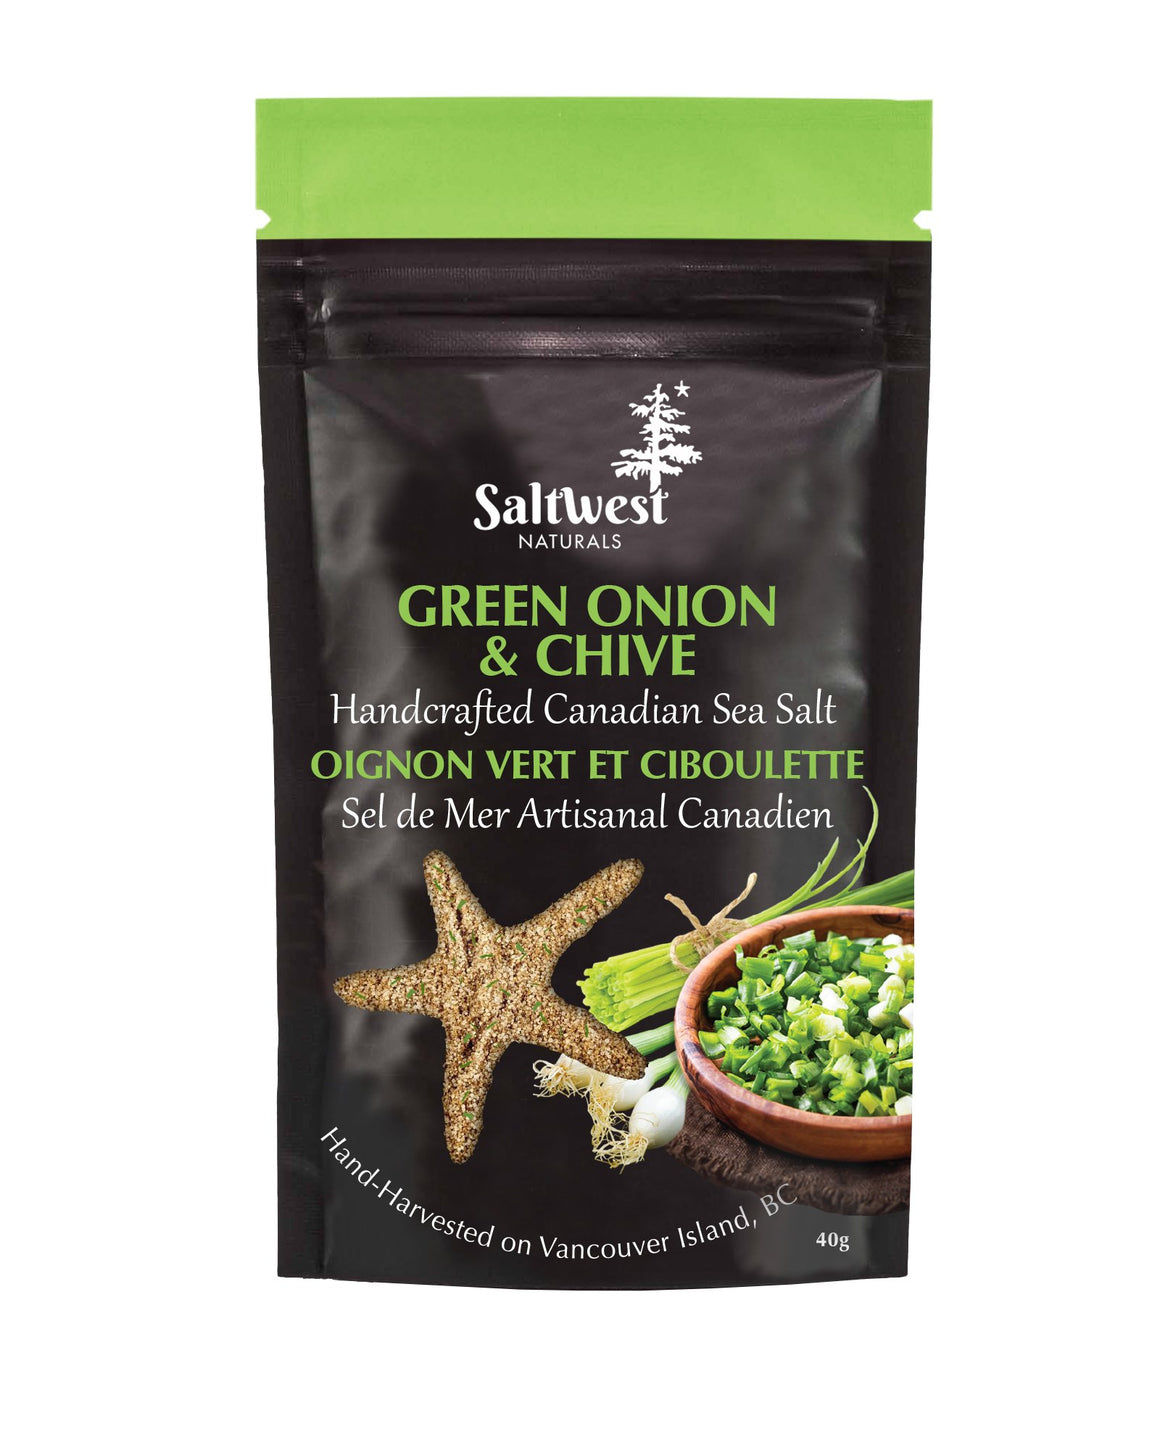 Saltwest - Green Onion & Chive Sea Salt